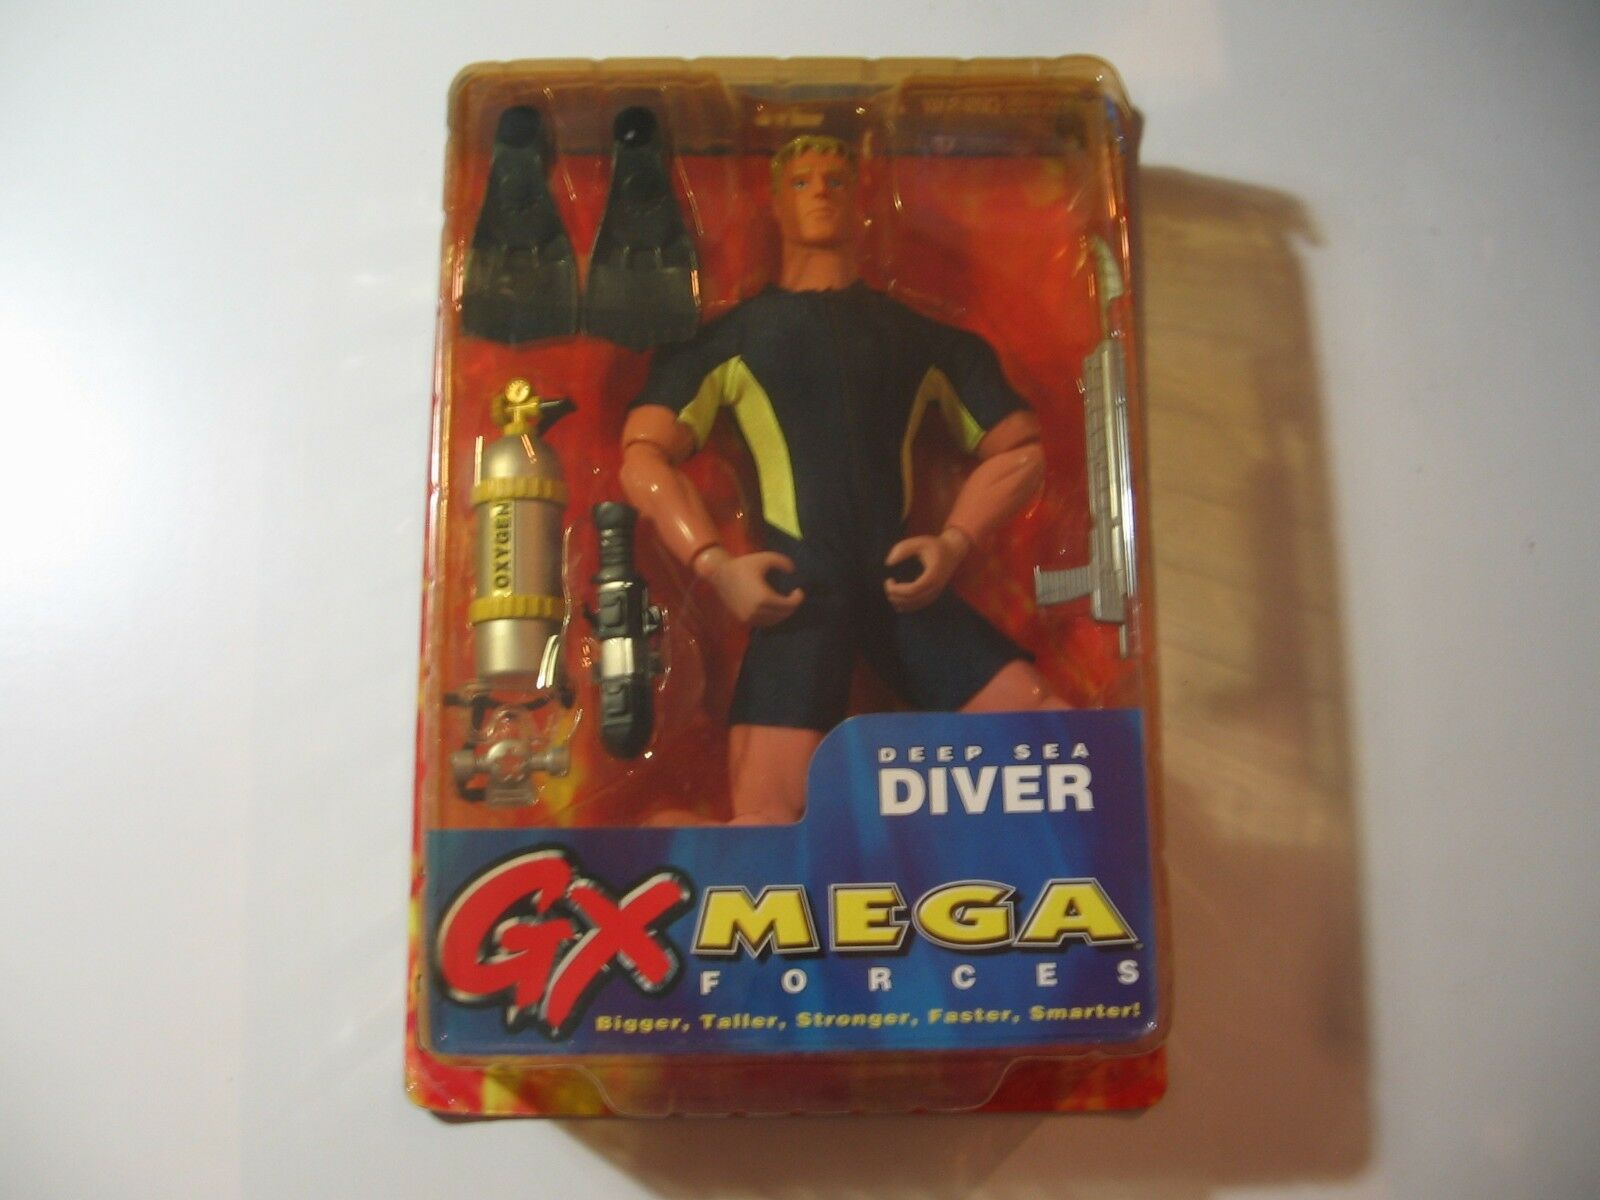 Deep Sea Diver GX Mega Forces 14